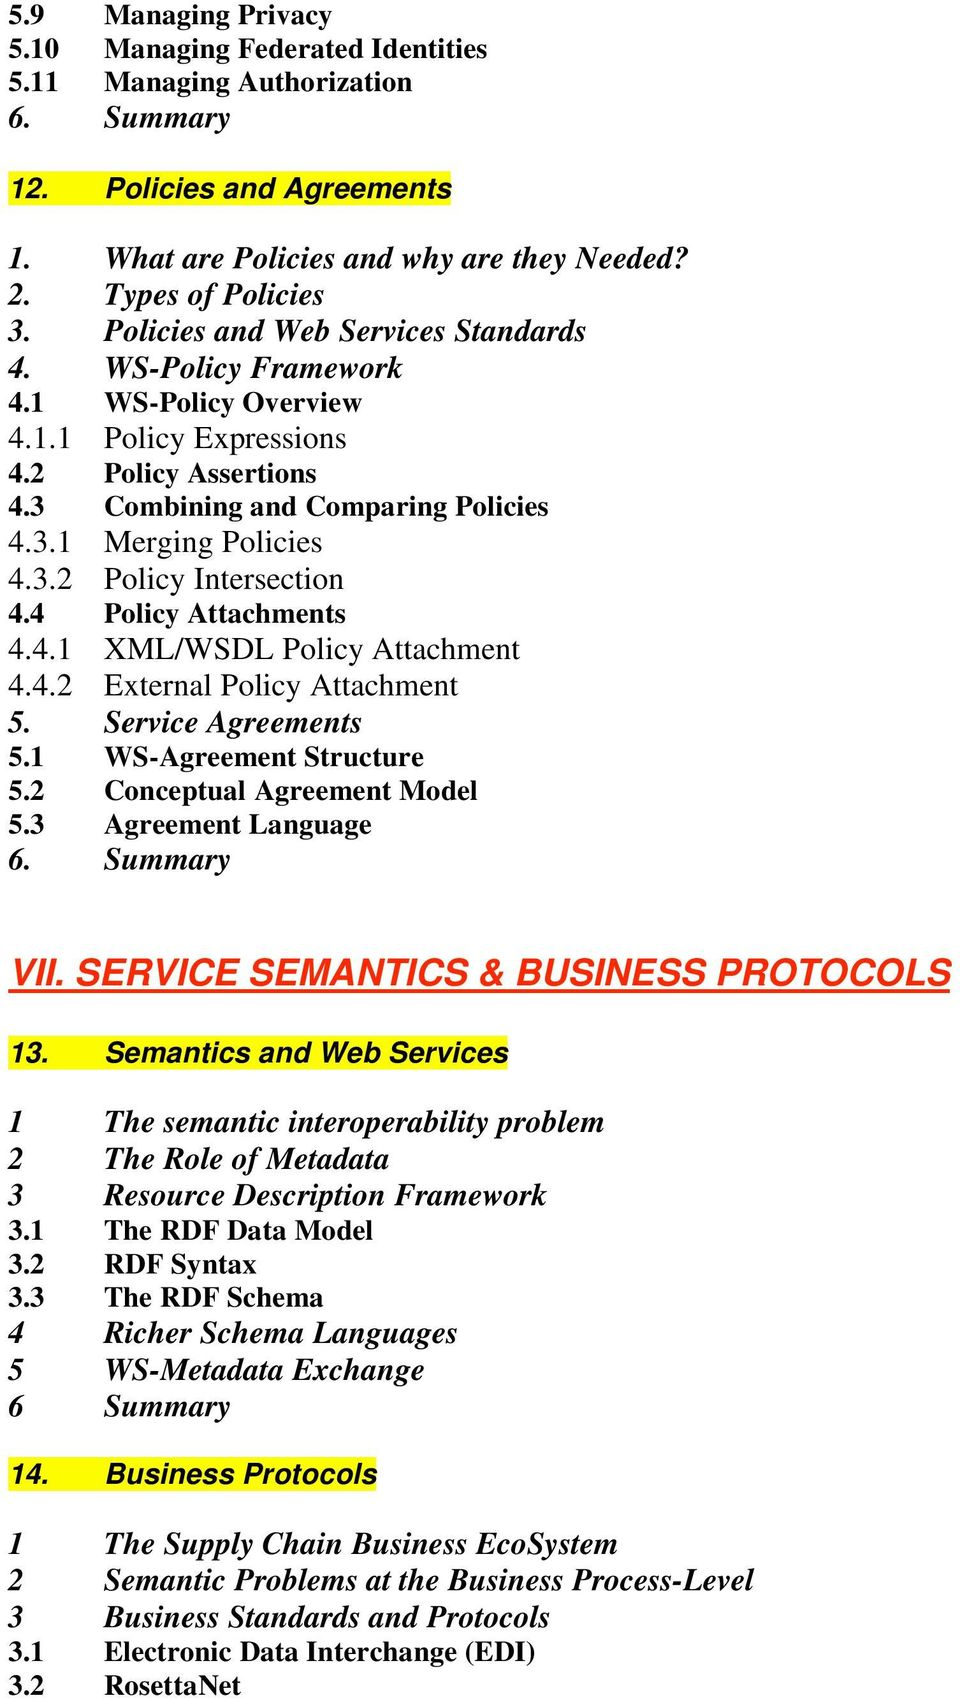 4 Policy Attachments 4.4.1 XML/WSDL Policy Attachment 4.4.2 External Policy Attachment 5. Service Agreements 5.1 WS-Agreement Structure 5.2 Conceptual Agreement Model 5.3 Agreement Language 6.